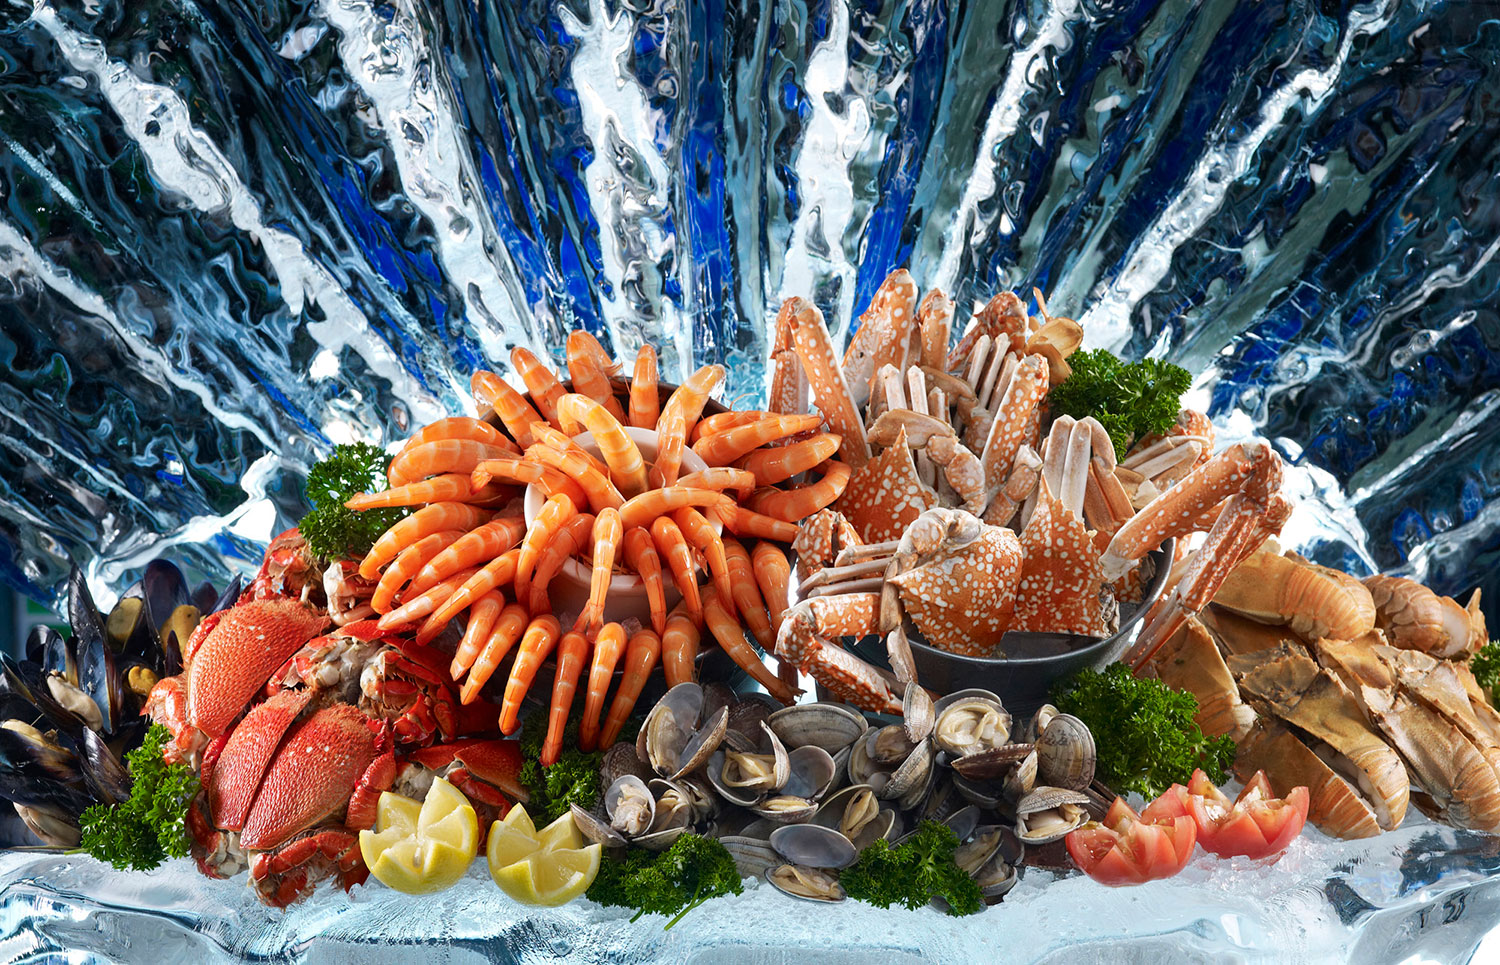 Crowne-Plaza-Changi-Airport---Seafood-Splendour-Buffet---Seafood-on-ice-(2)